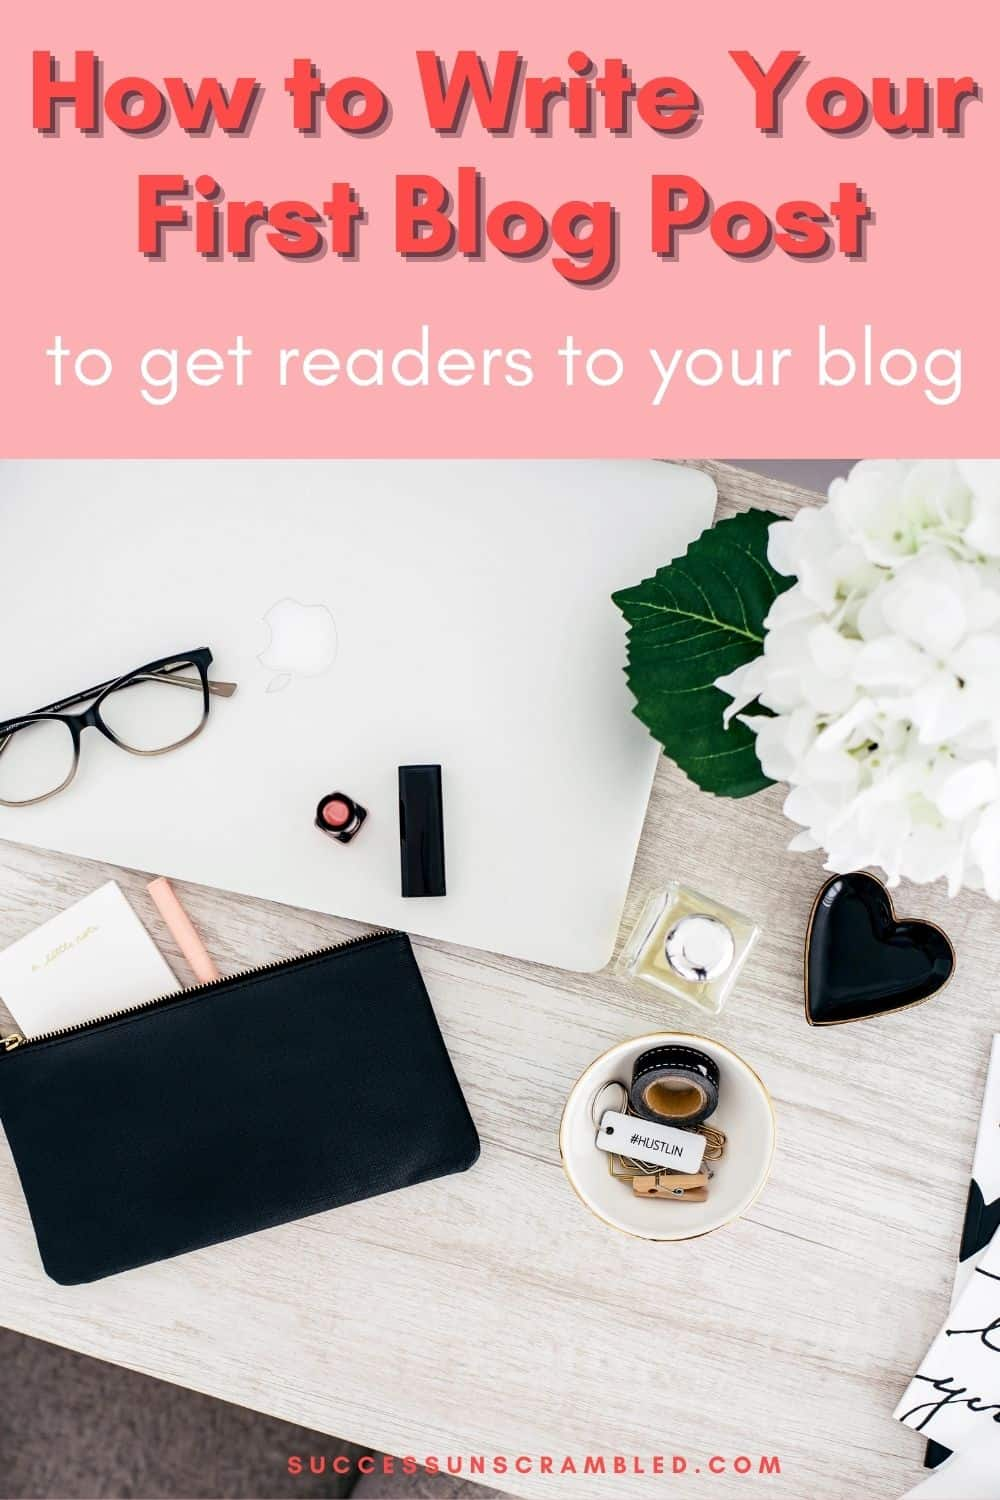 photo of closed laptop on desk with glasses, lipstick and ladies purse